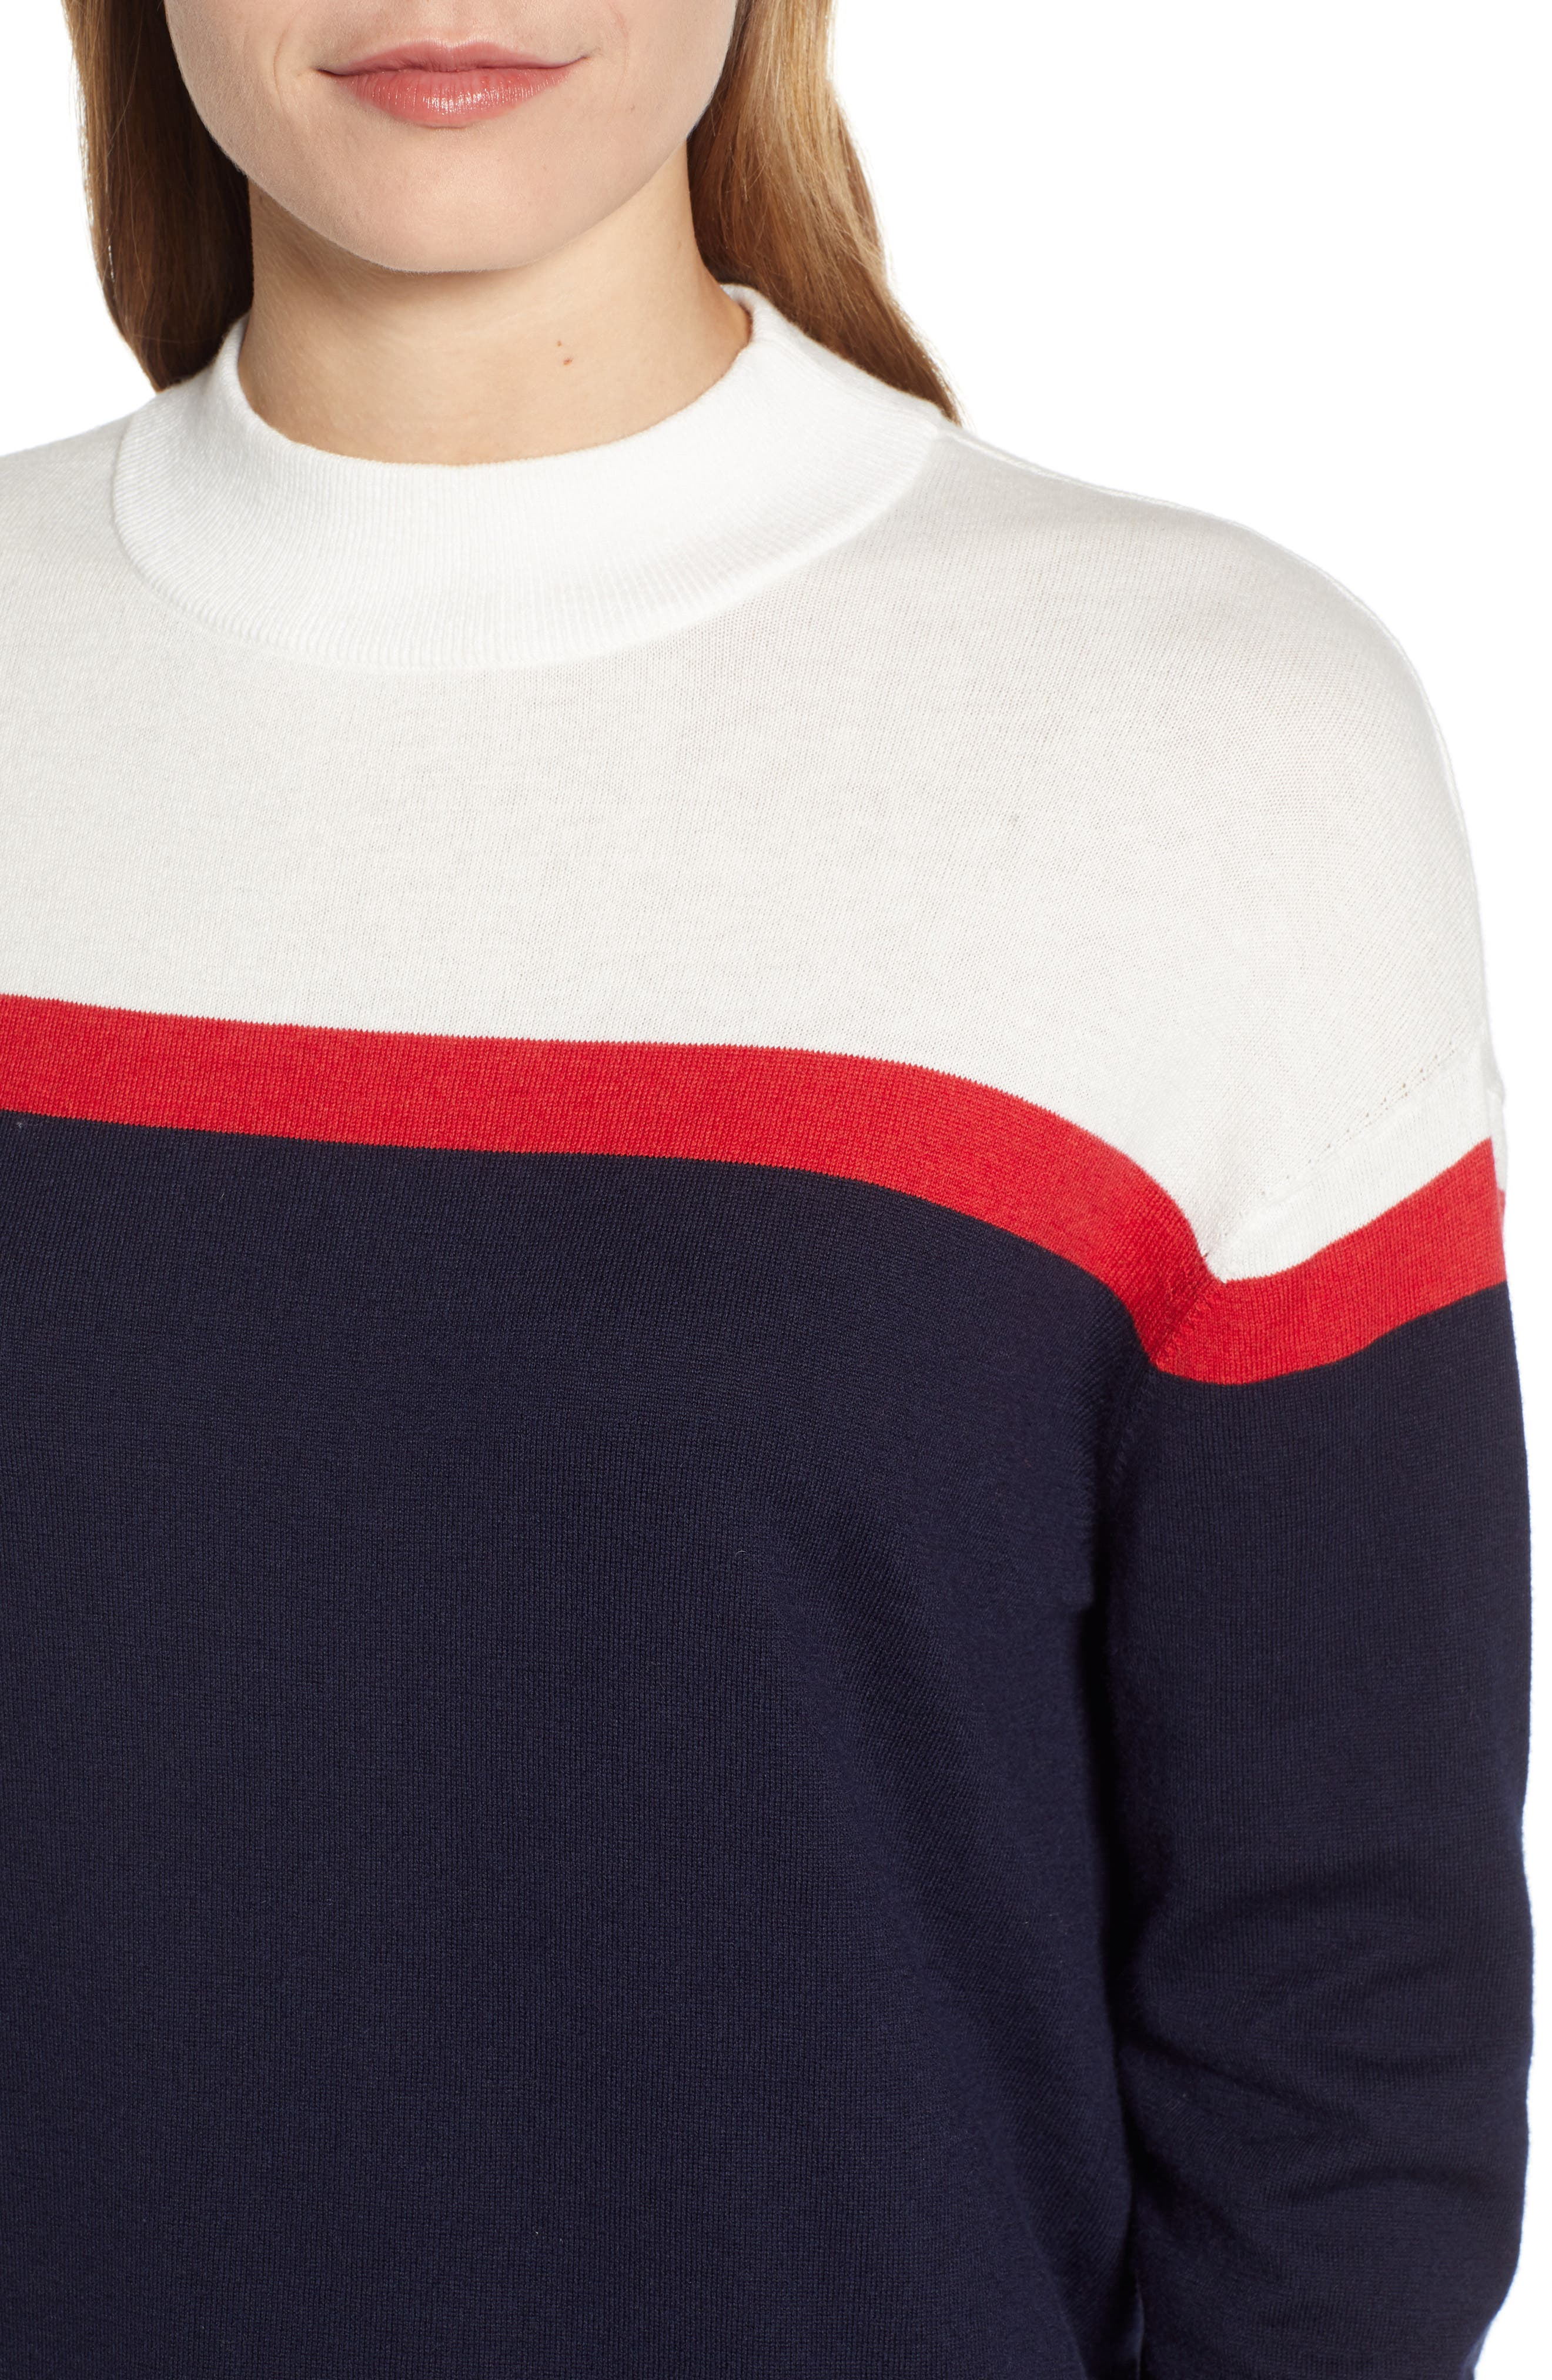 VELVET BY GRAHAM & SPENCER, Stripe Mock Neck Cotton & Cashmere Sweater, Alternate thumbnail 4, color, MULTI